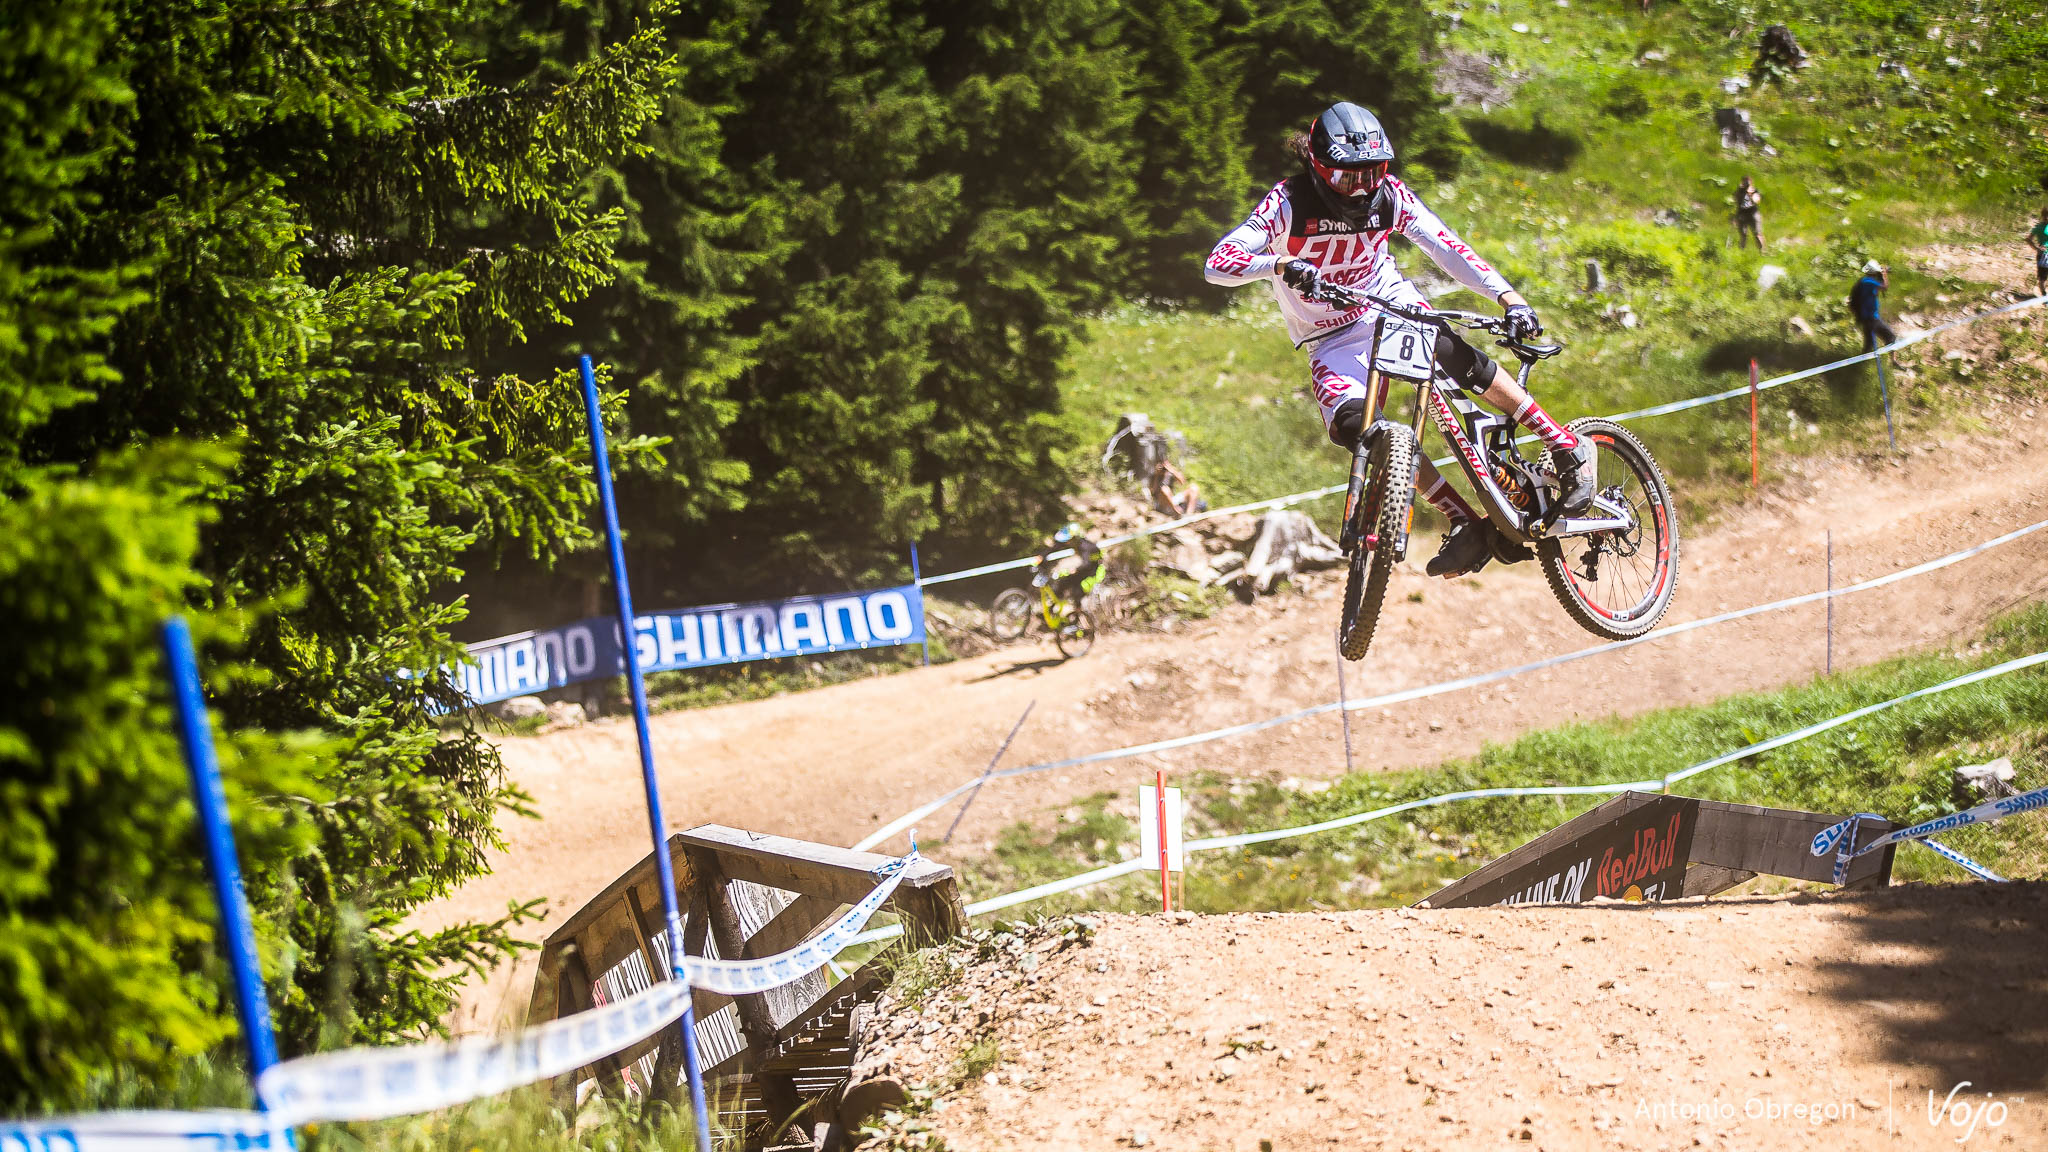 Lenzerheide_UCI_World_Cup_DH_2015_final_Porfoli_Elite_Copyright_Antonio_Obregon_VojoMag-6